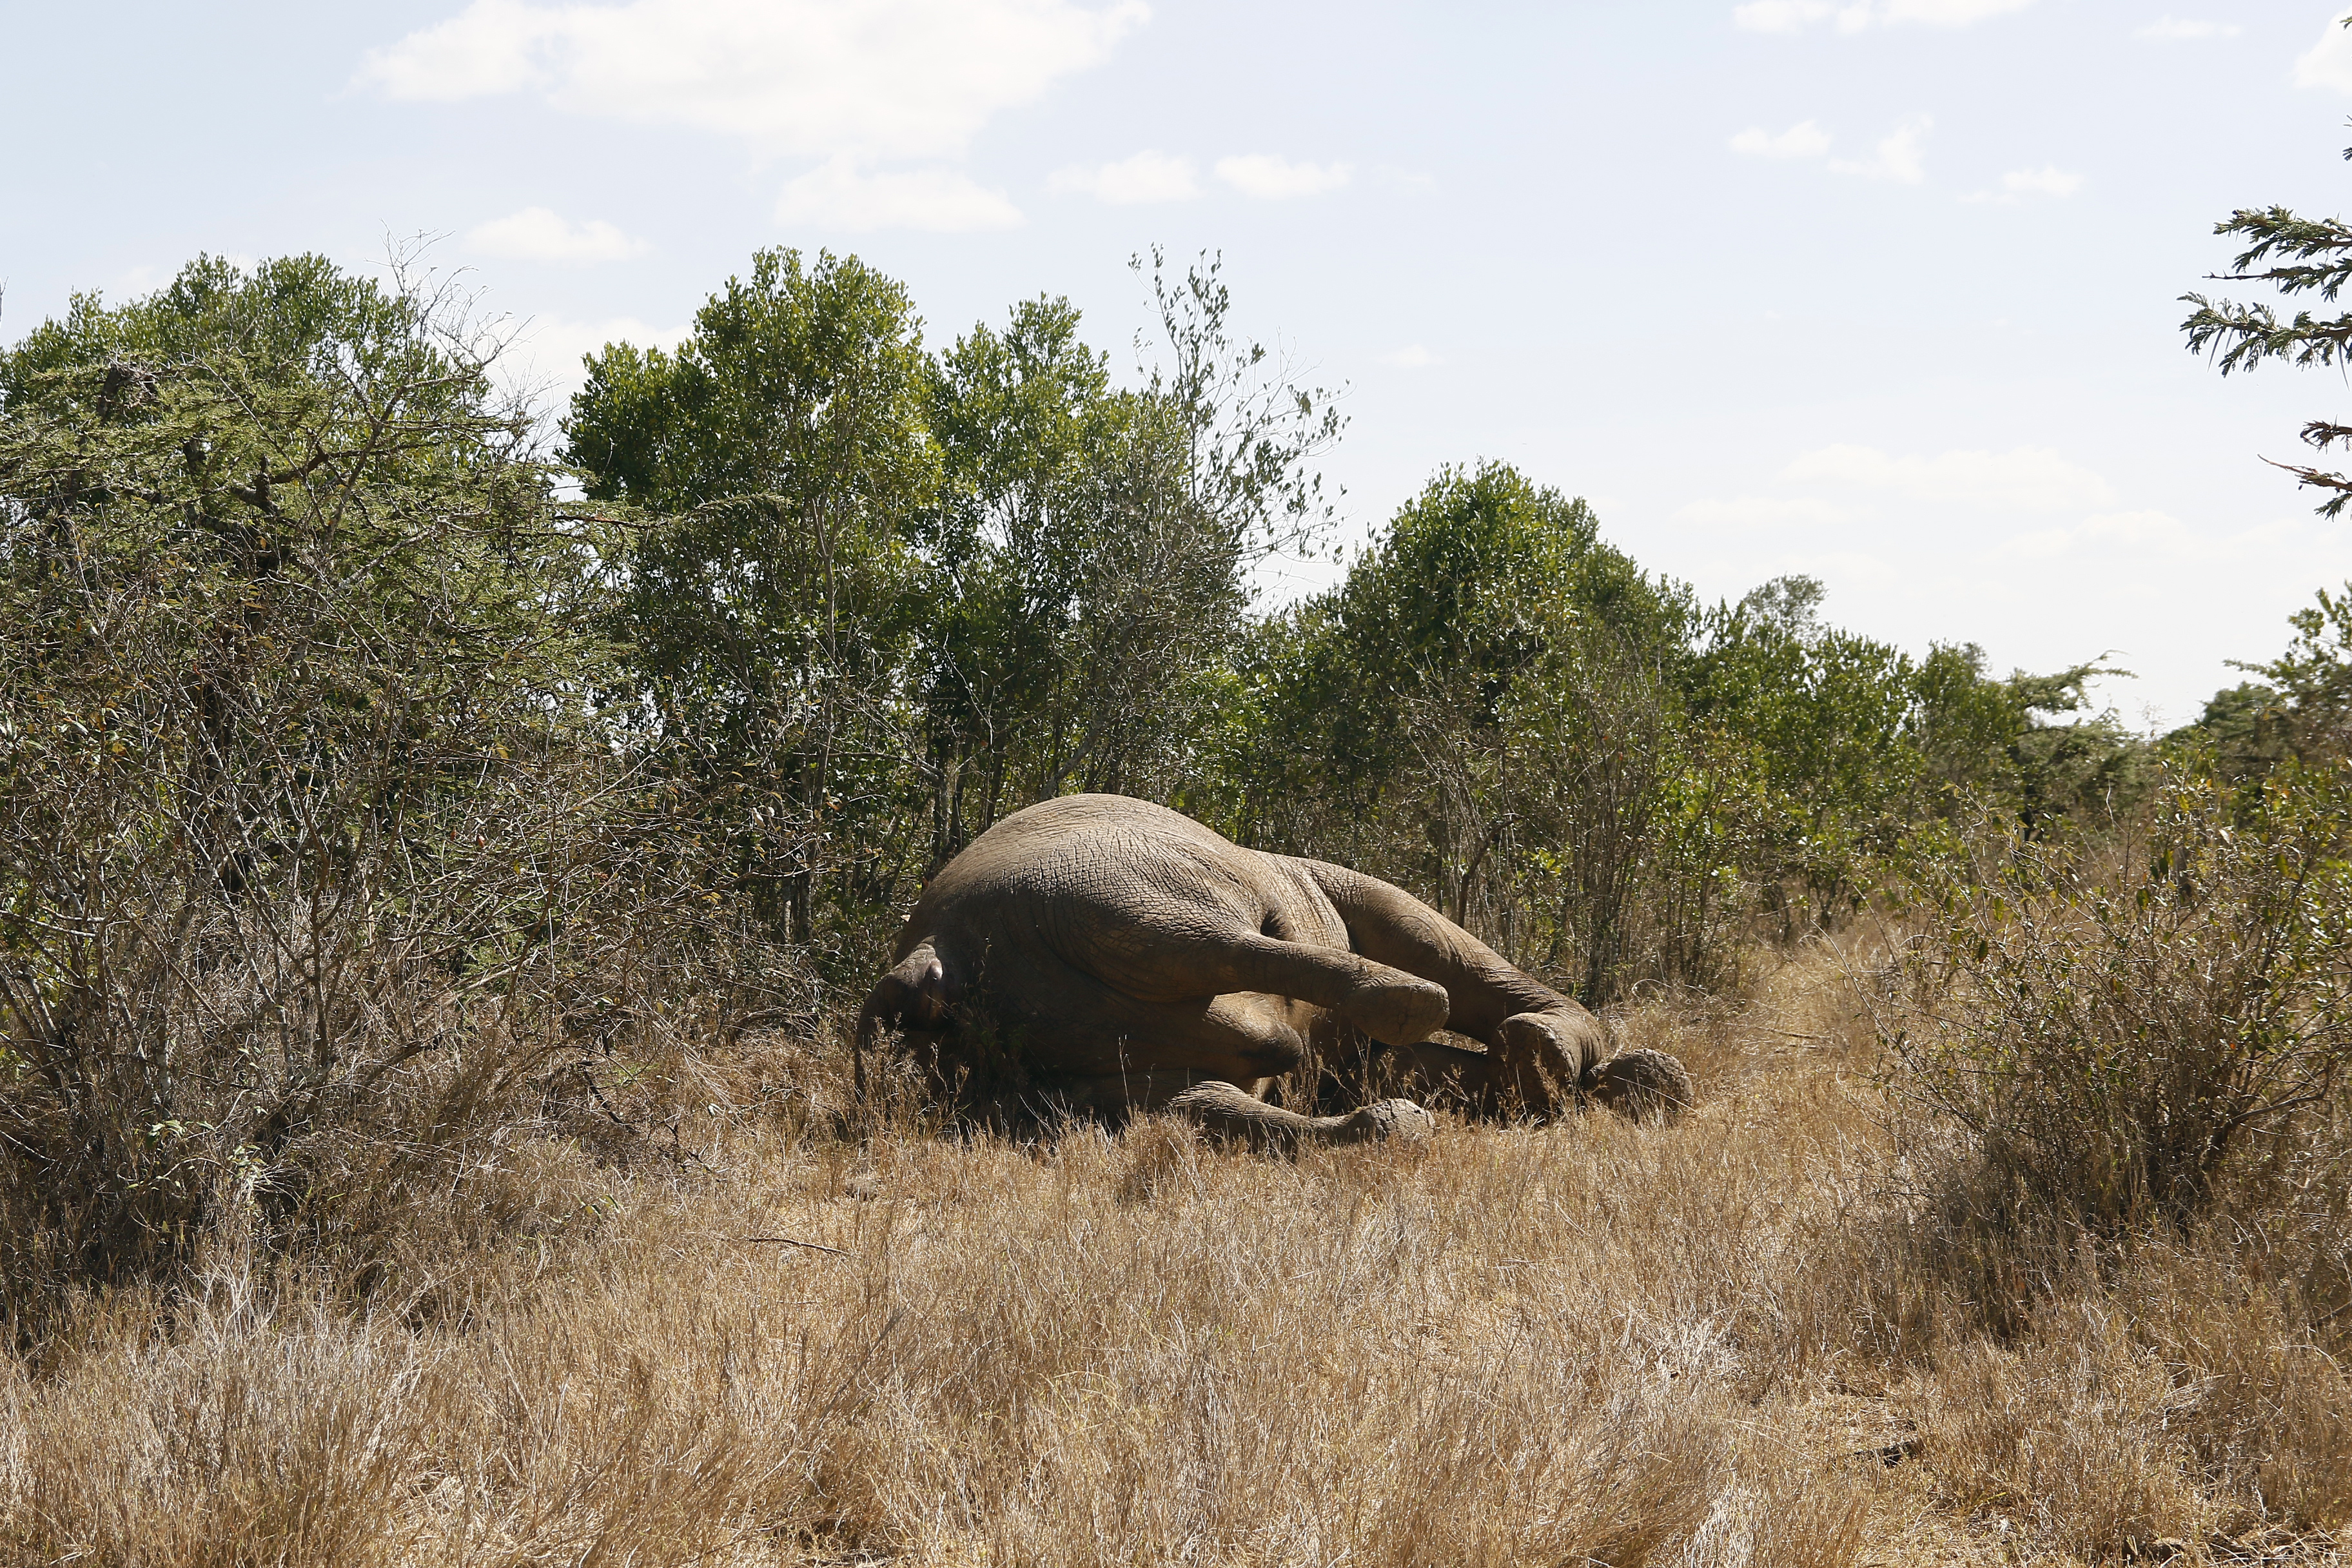 There are only about 400,000 elephants left in Africa. Credit: PA